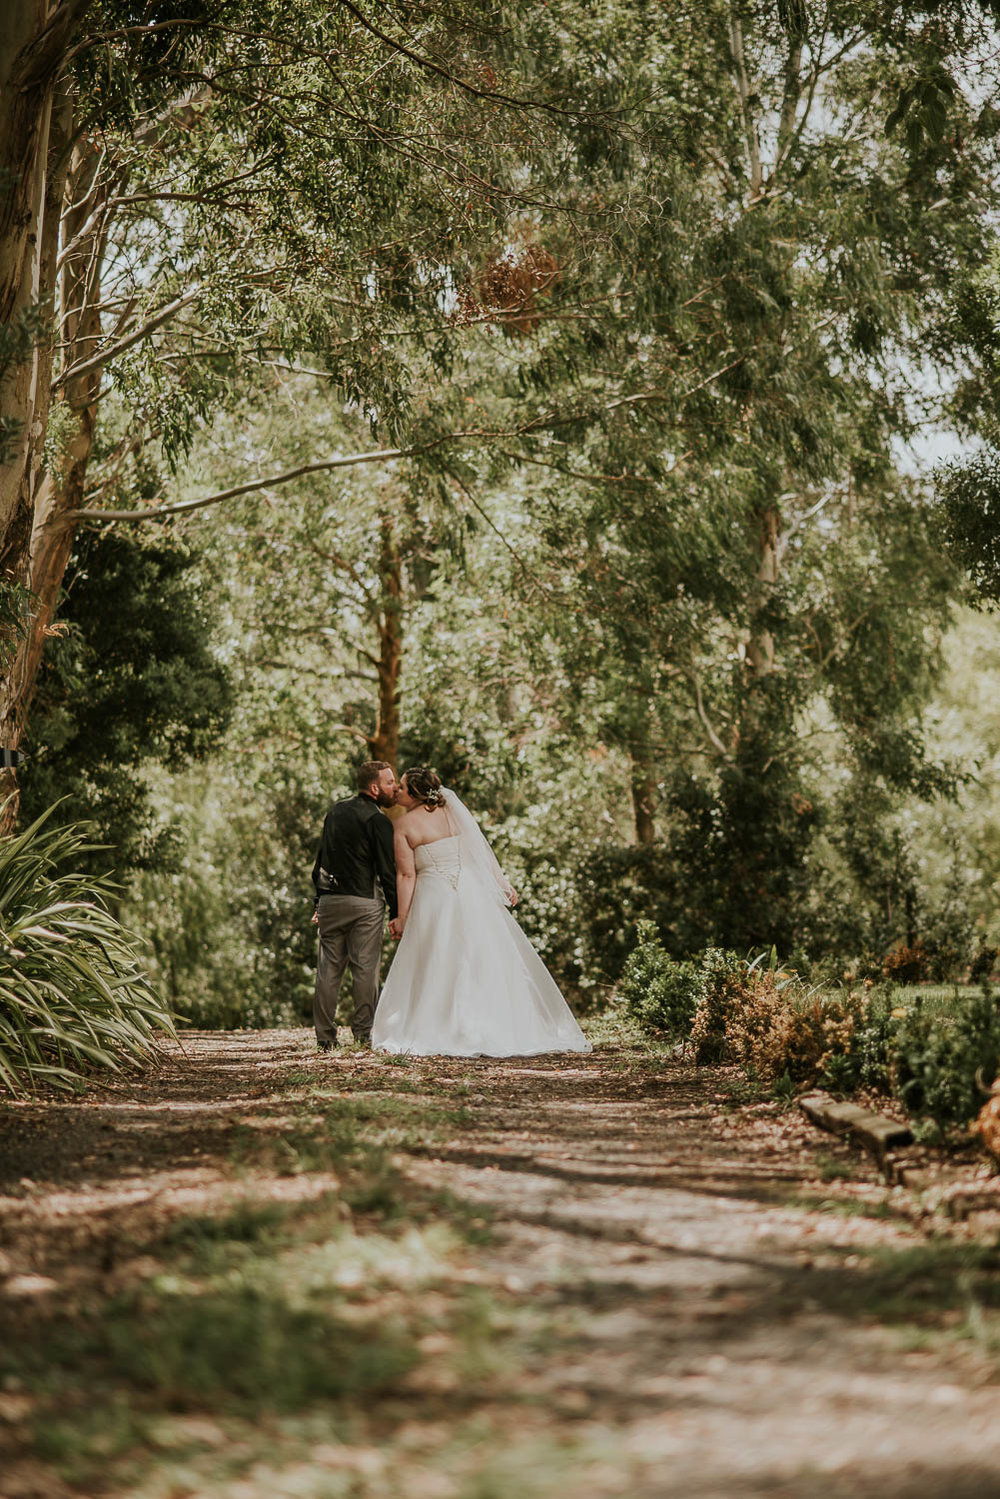 David-Alysha-Farm-Rustic-Auckland-Wedding-50